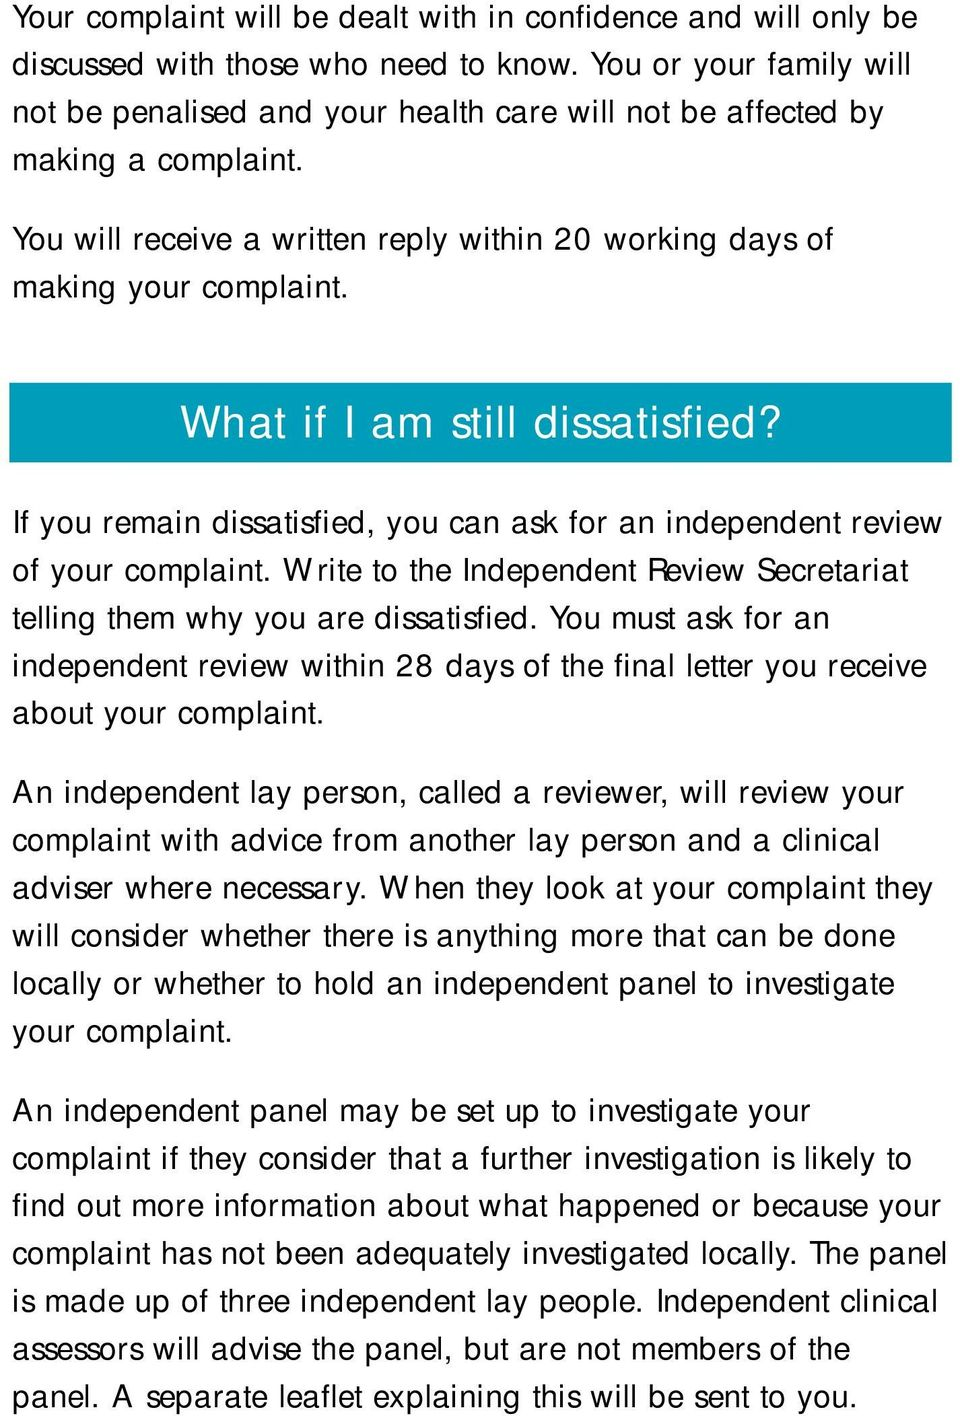 What if I am still dissatisfied? If you remain dissatisfied, you can ask for an independent review of your complaint. Write to the Independent Review Secretariat telling them why you are dissatisfied.